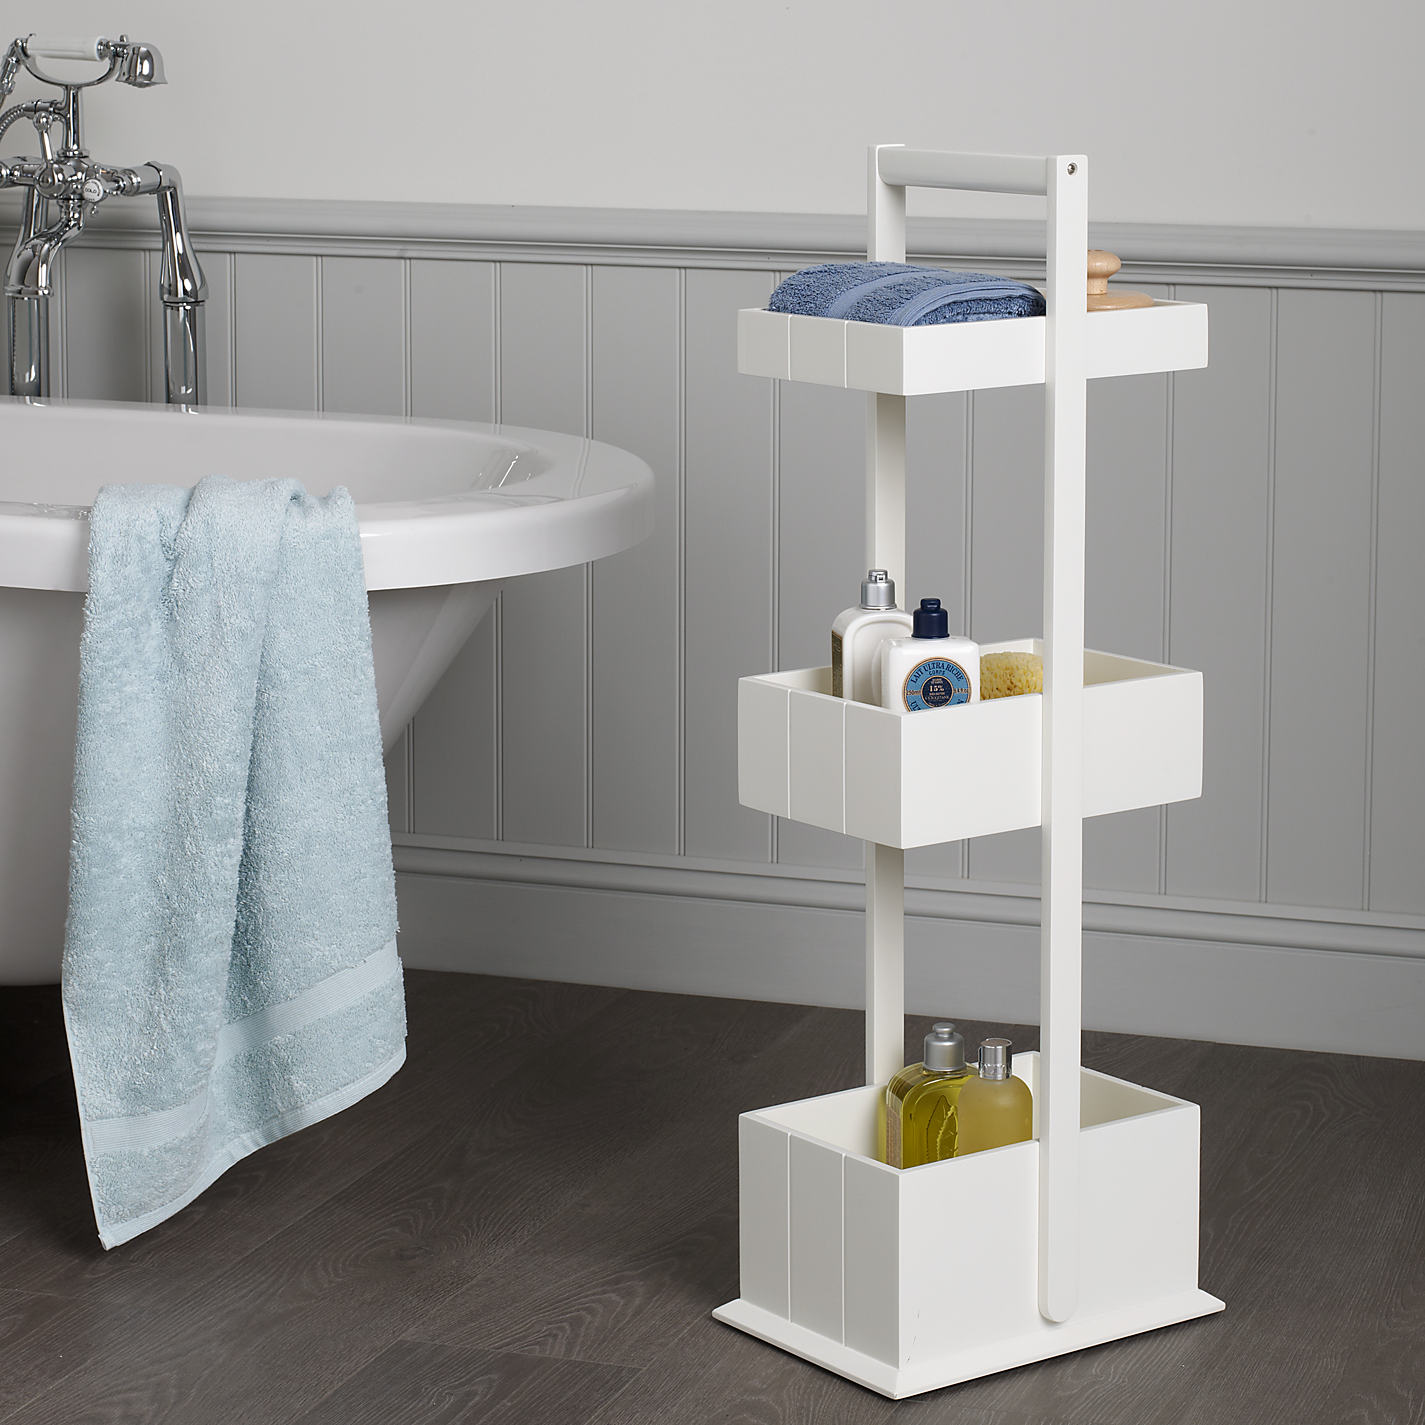 Bathroom John buy john lewis st ives 3 tier bathroom storage caddy | john lewis